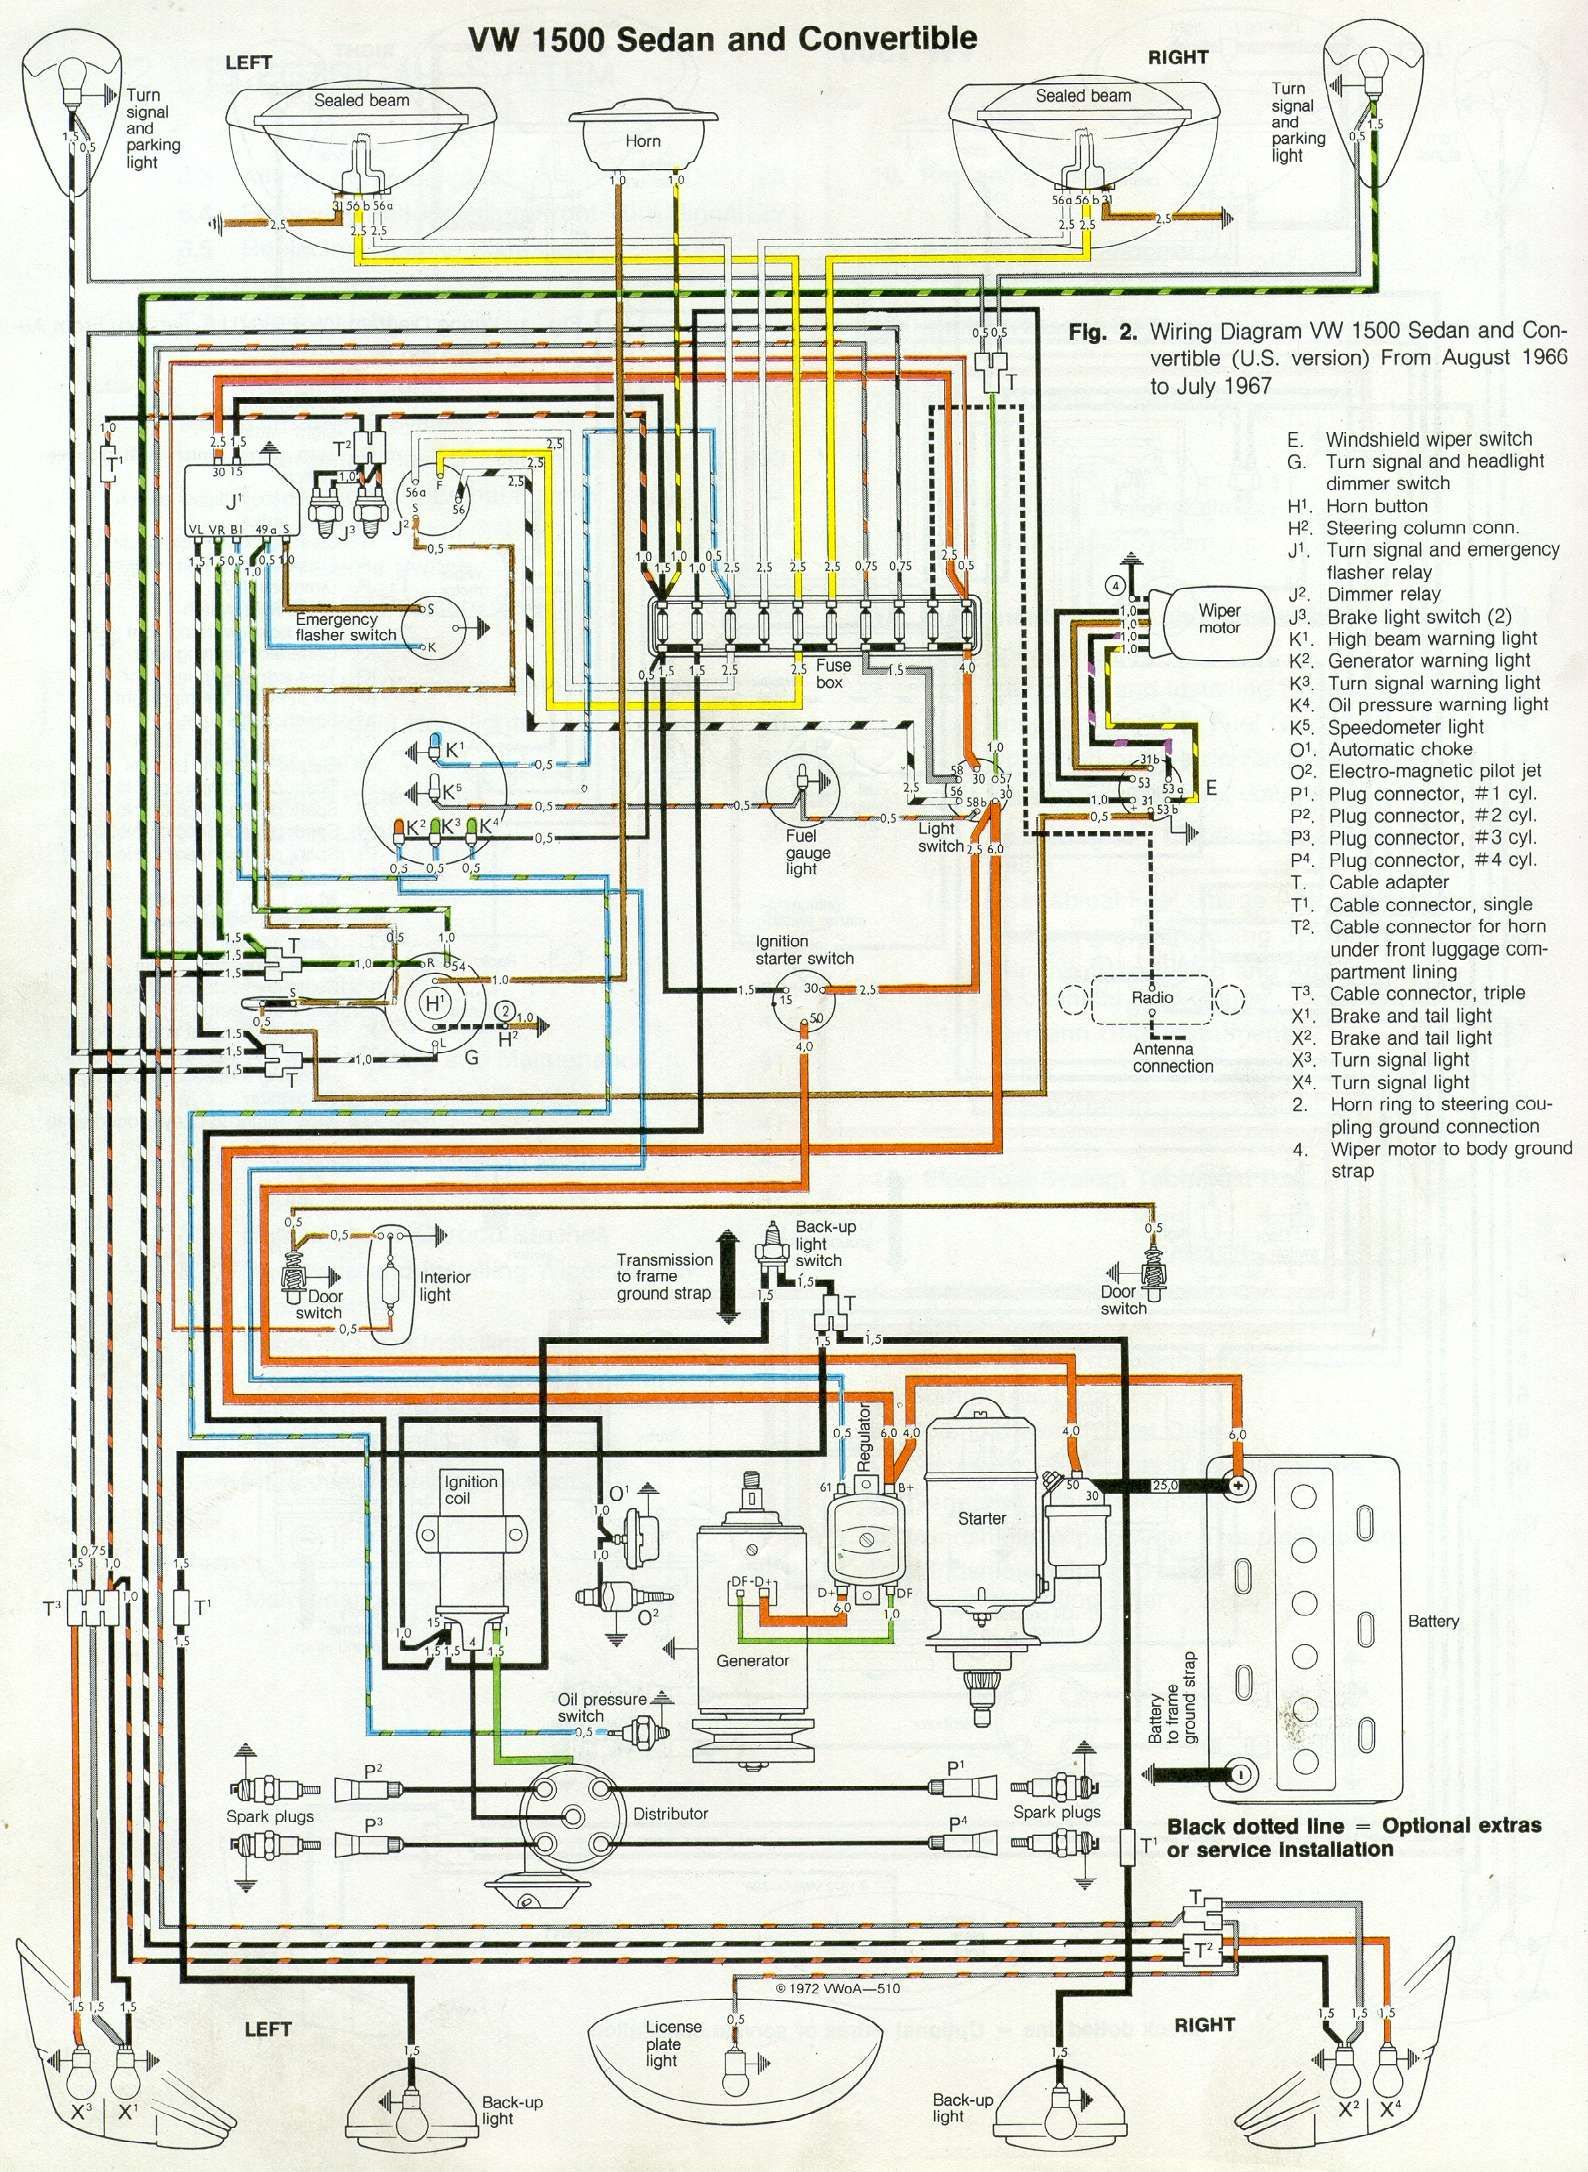 hight resolution of 1968 vw wiring schematic wiring diagram fascinating 1968 vw wiring schematic wiring diagrams konsult 1968 vw